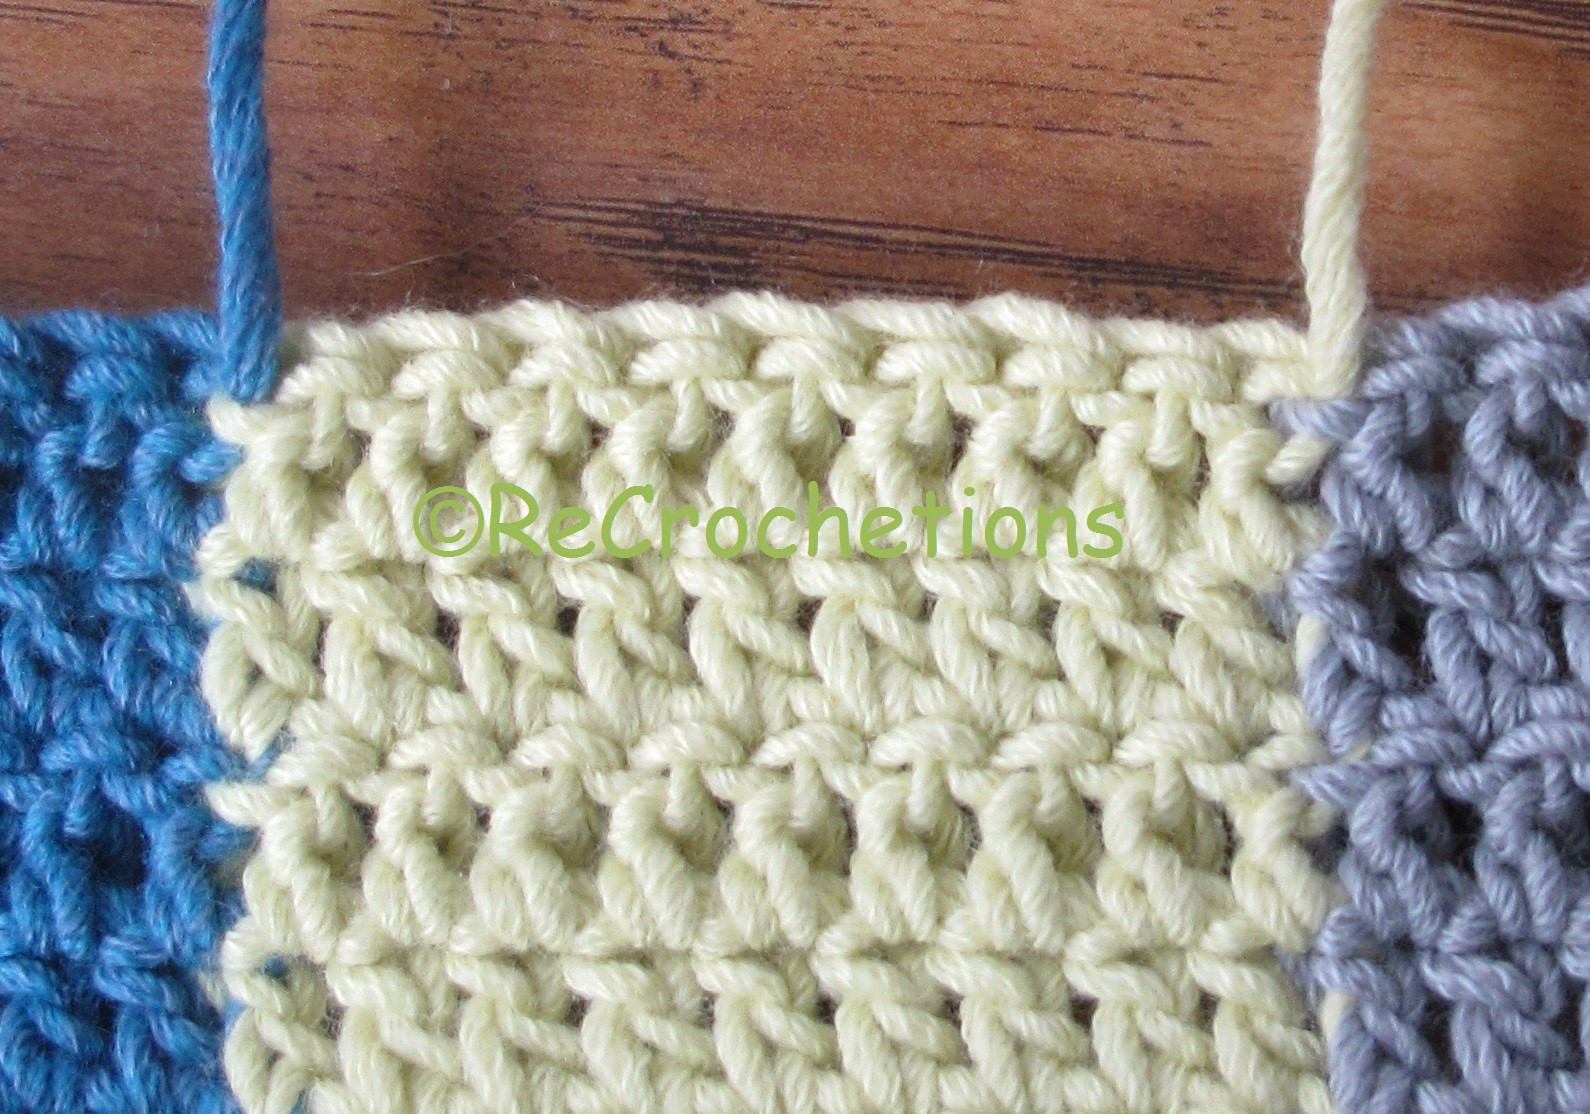 Double Crochet Stitch Elegant Recrochetions Reversible Intarsia Half Double Crochet Of Awesome 41 Pictures Double Crochet Stitch